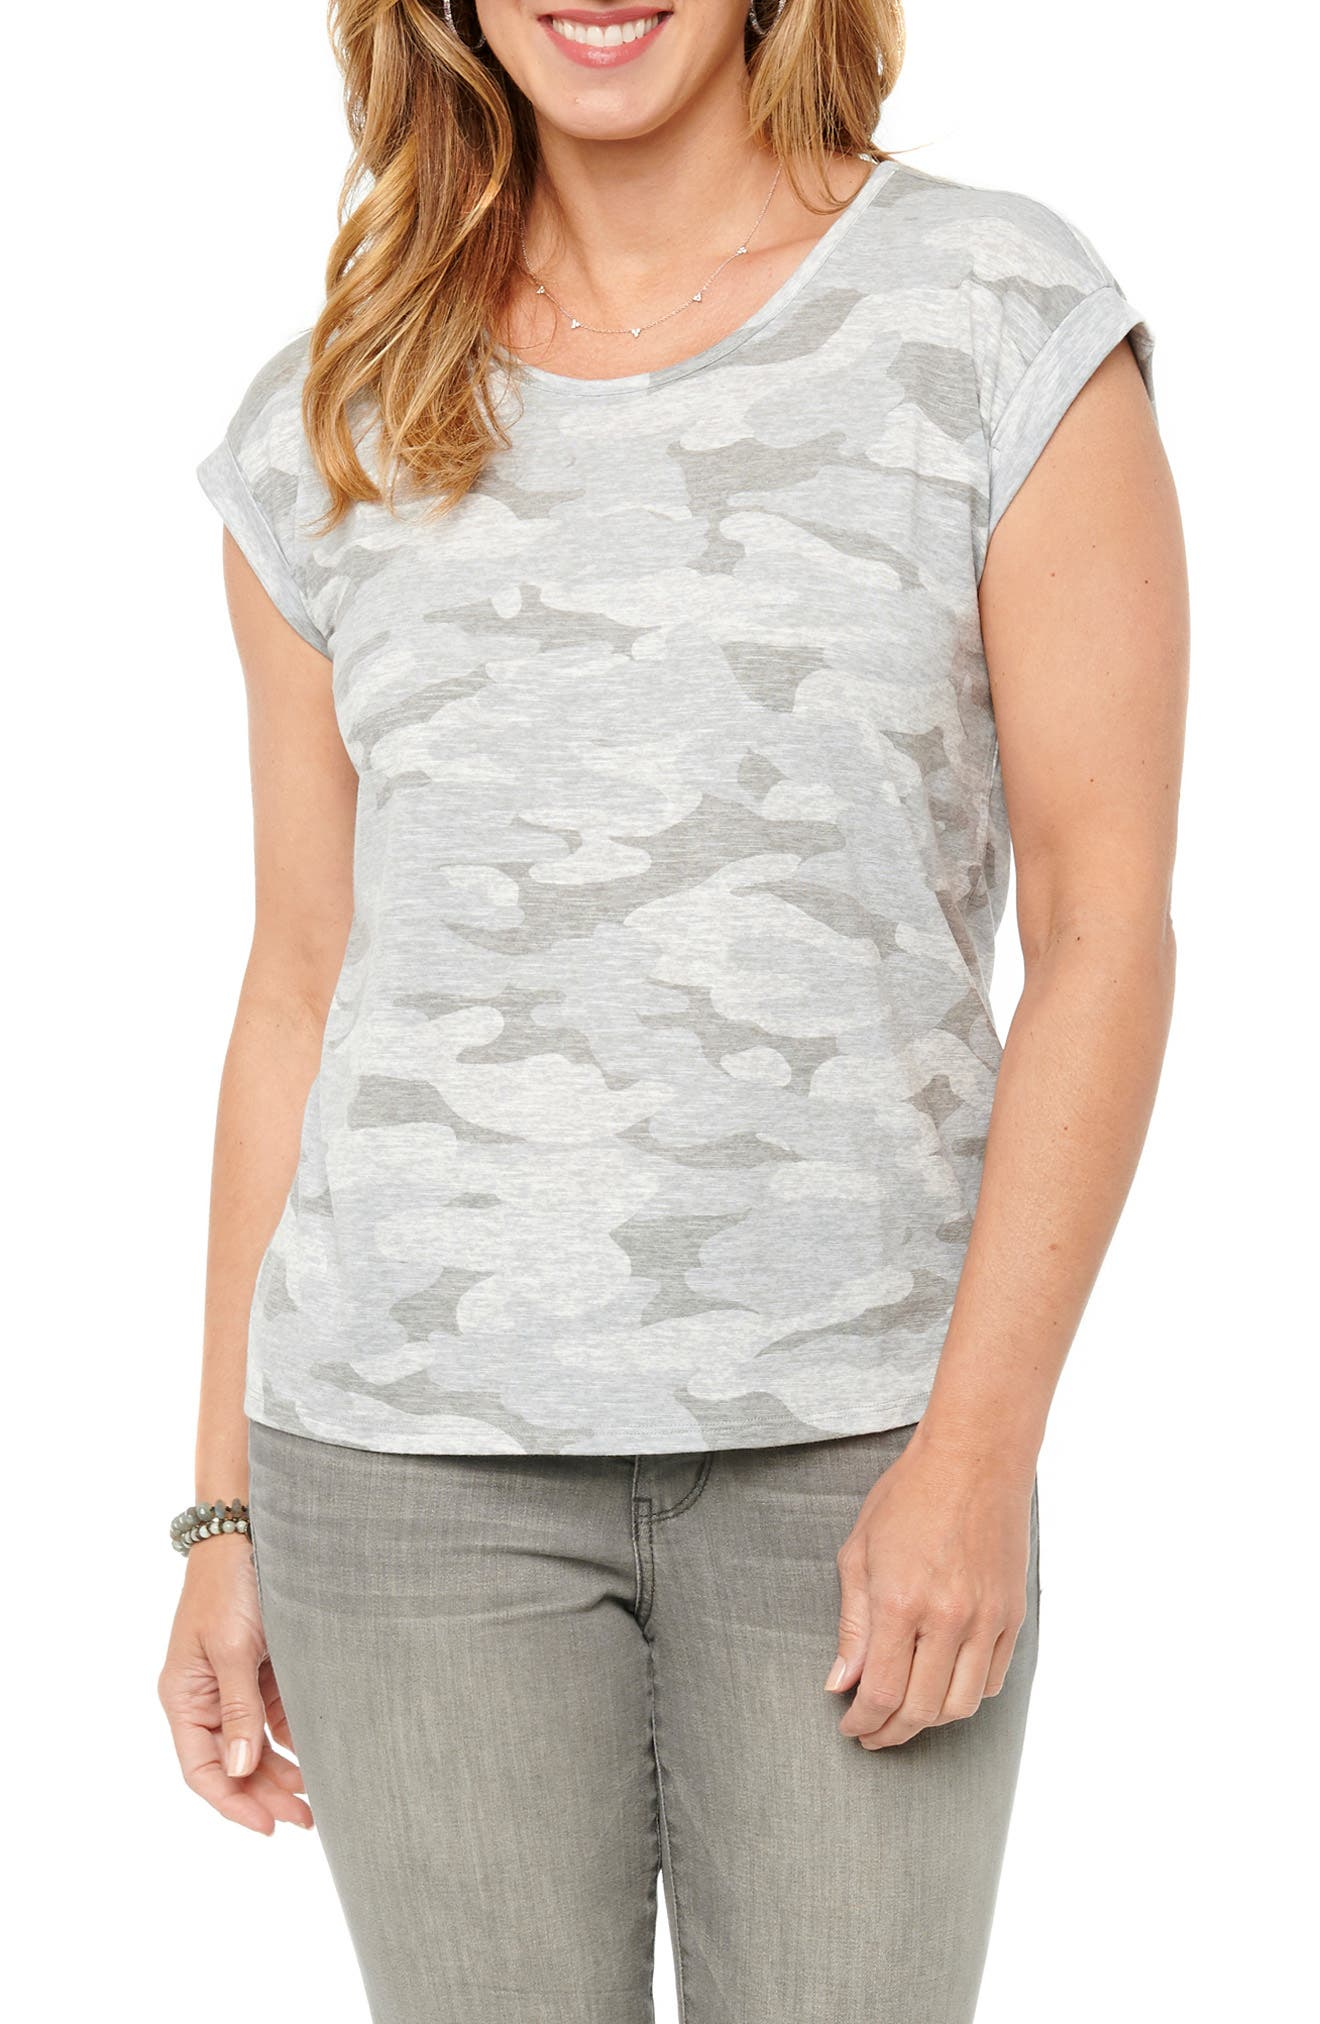 An everyday staple gets a literal twist on this back-keyhole T-shirt cut from a lightweight jersey with a faded camo print. Super-short dolman sleeves with folded cuffs give it an almost muscle-like fit, while a curved hemline completes the laid-back look. Style Name: Wit & Wisdom Twist Back Camo T-Shirt (Nordstrom Exclusive). Style Number: 6039875. Available in stores.